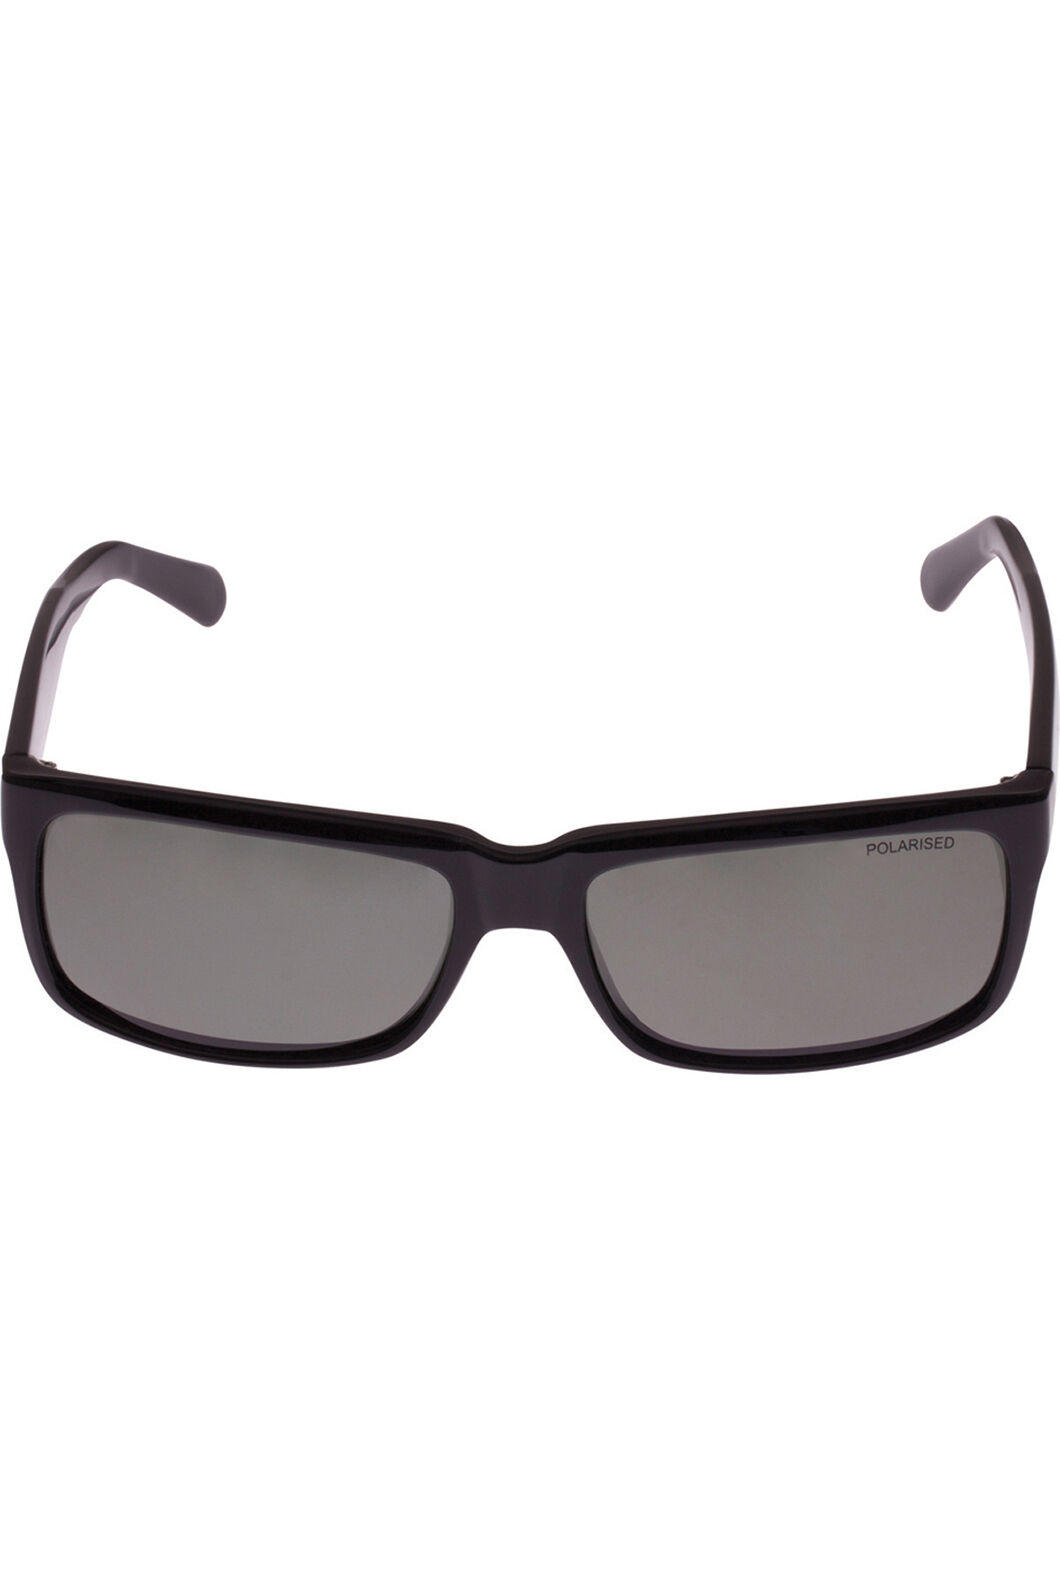 Cancer Council Men's Blaand Sunglasse, Black, hi-res